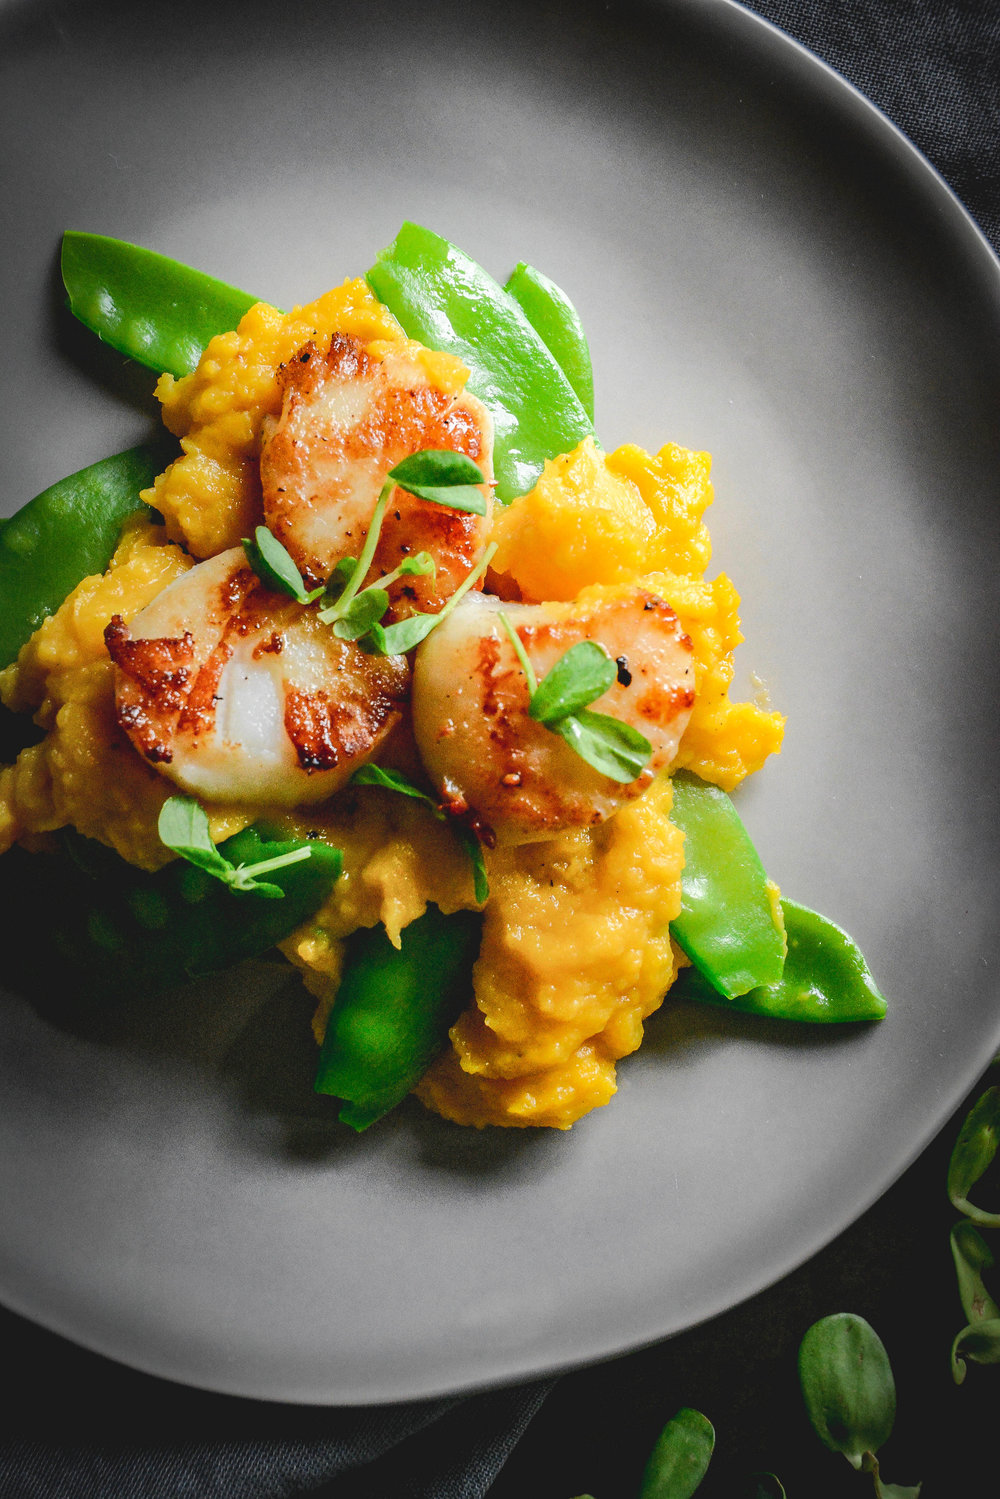 Scallops with butternut squash puree and snow peas